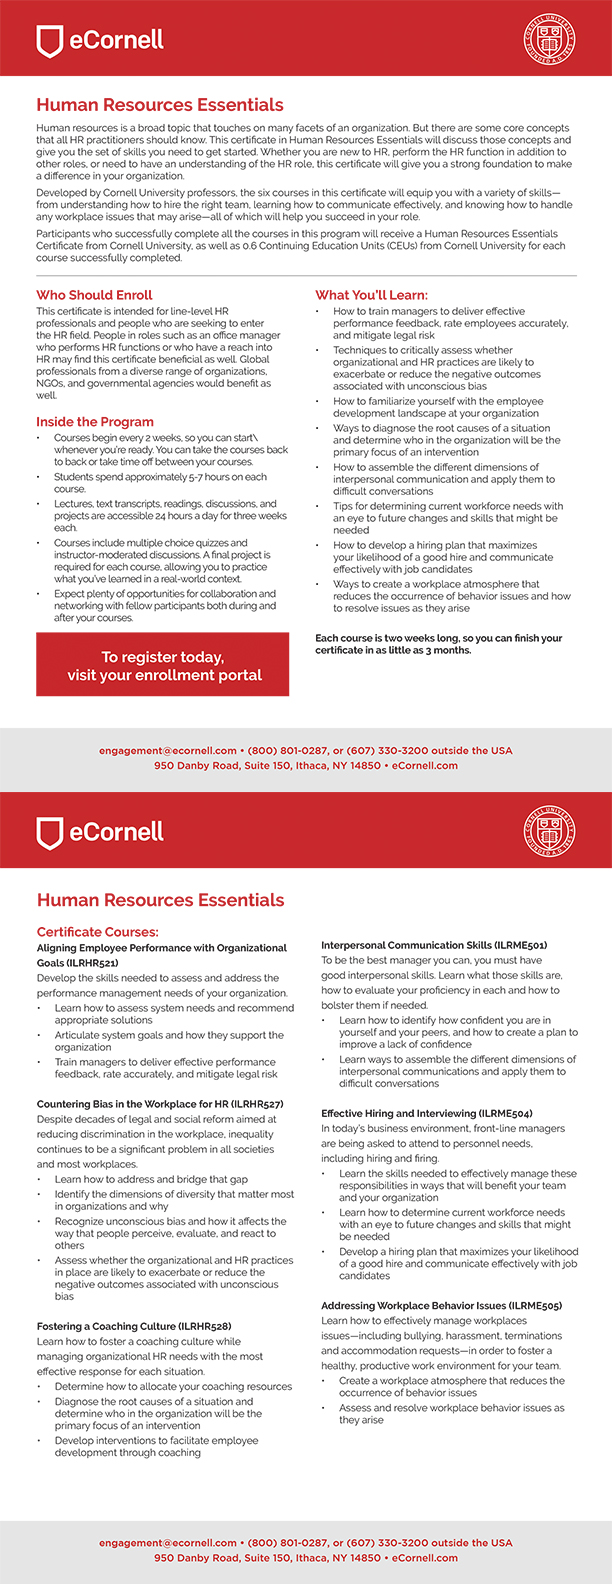 Human Resources Essentials Flyer for Corporations